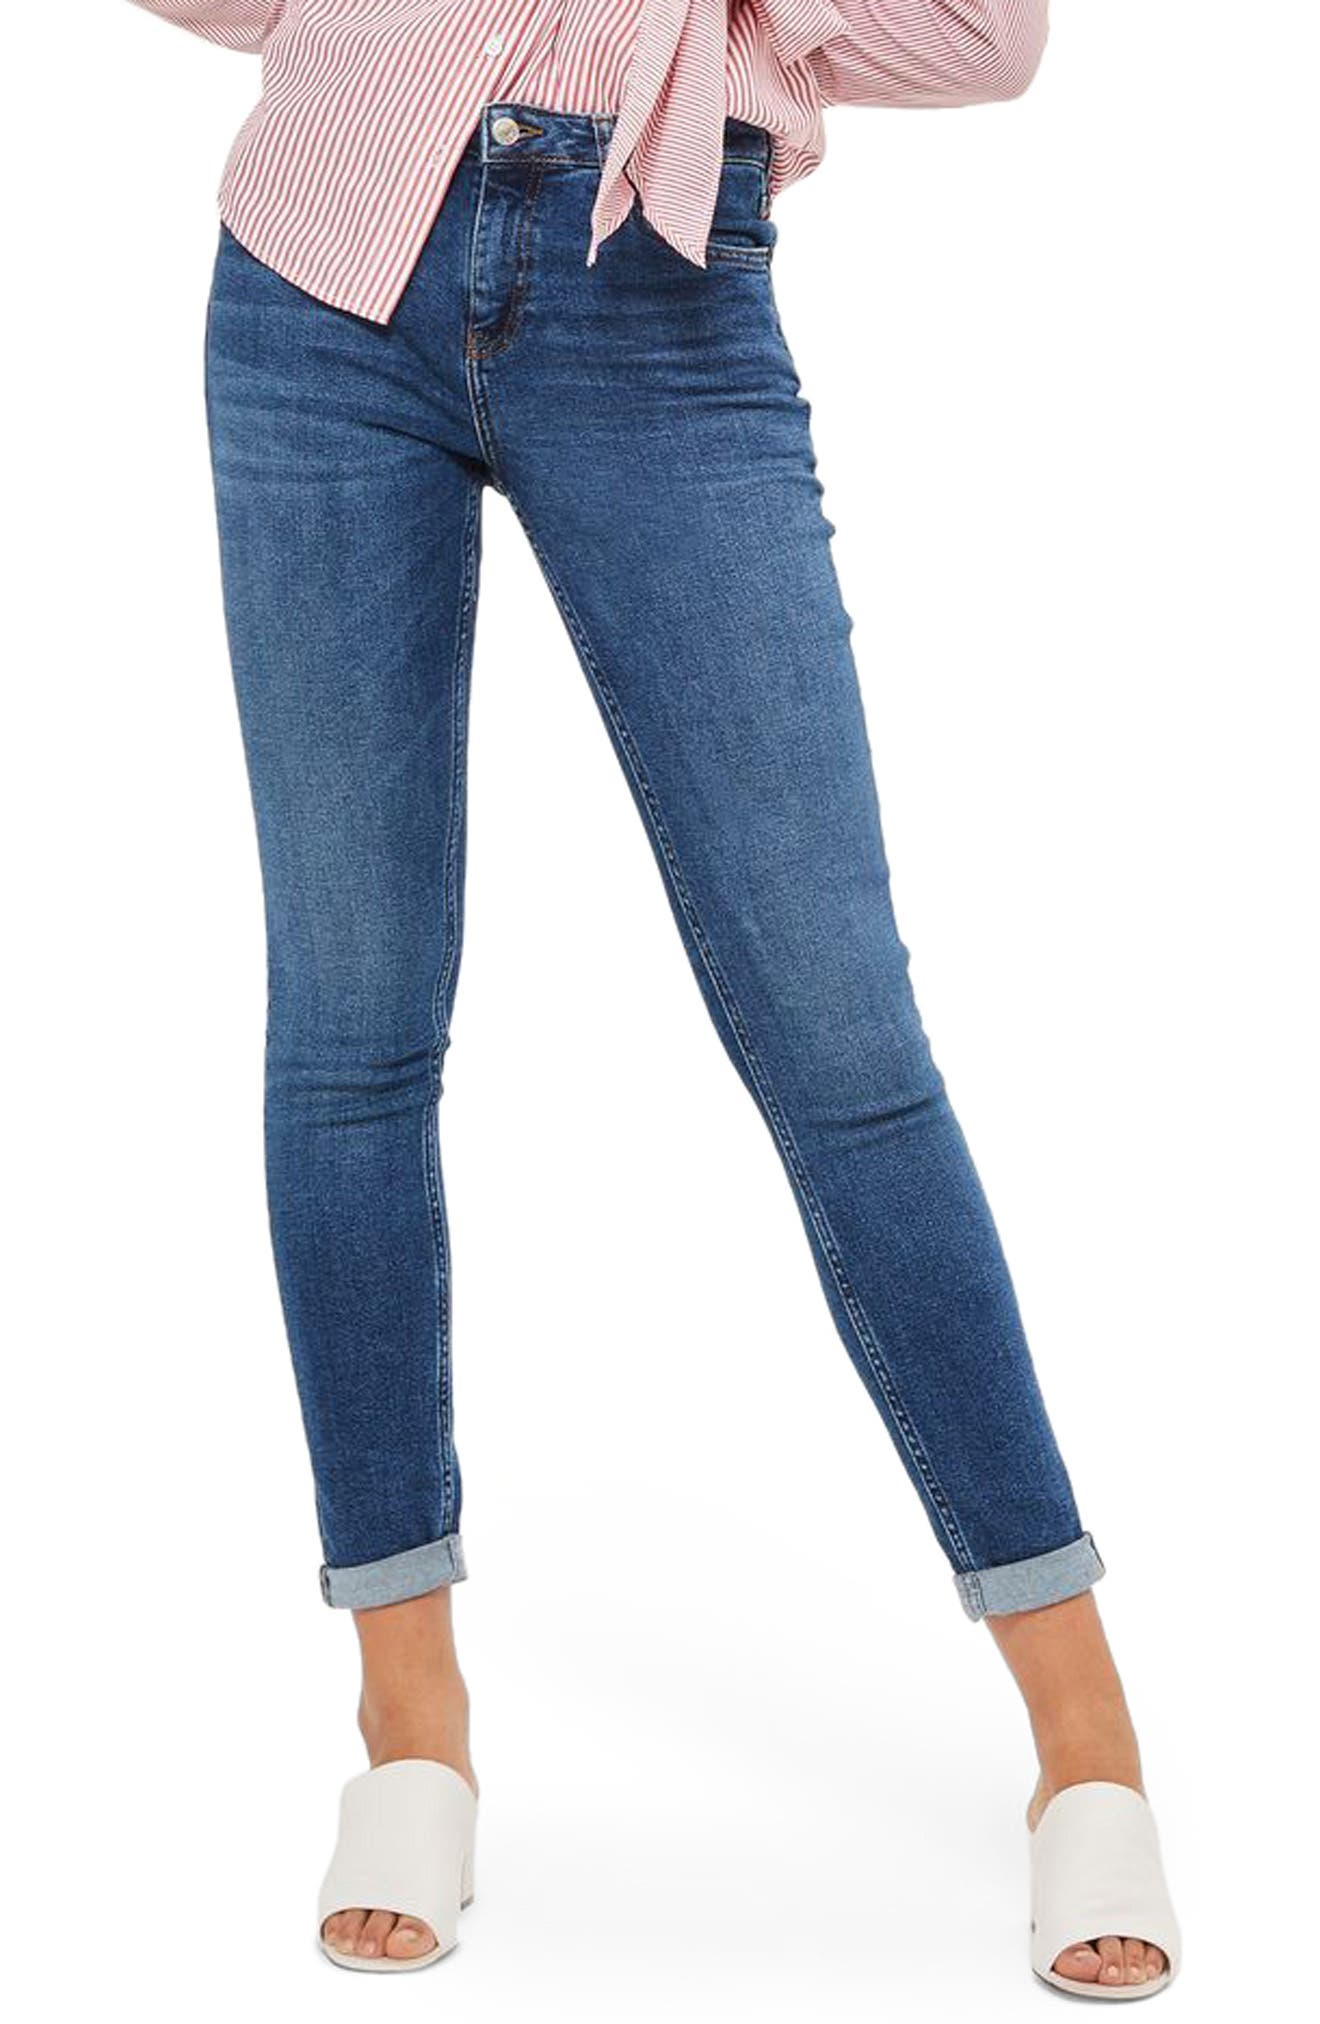 Alternate Image 1 Selected - Topshop Lucas Relaxed Fit Jeans (Tall)